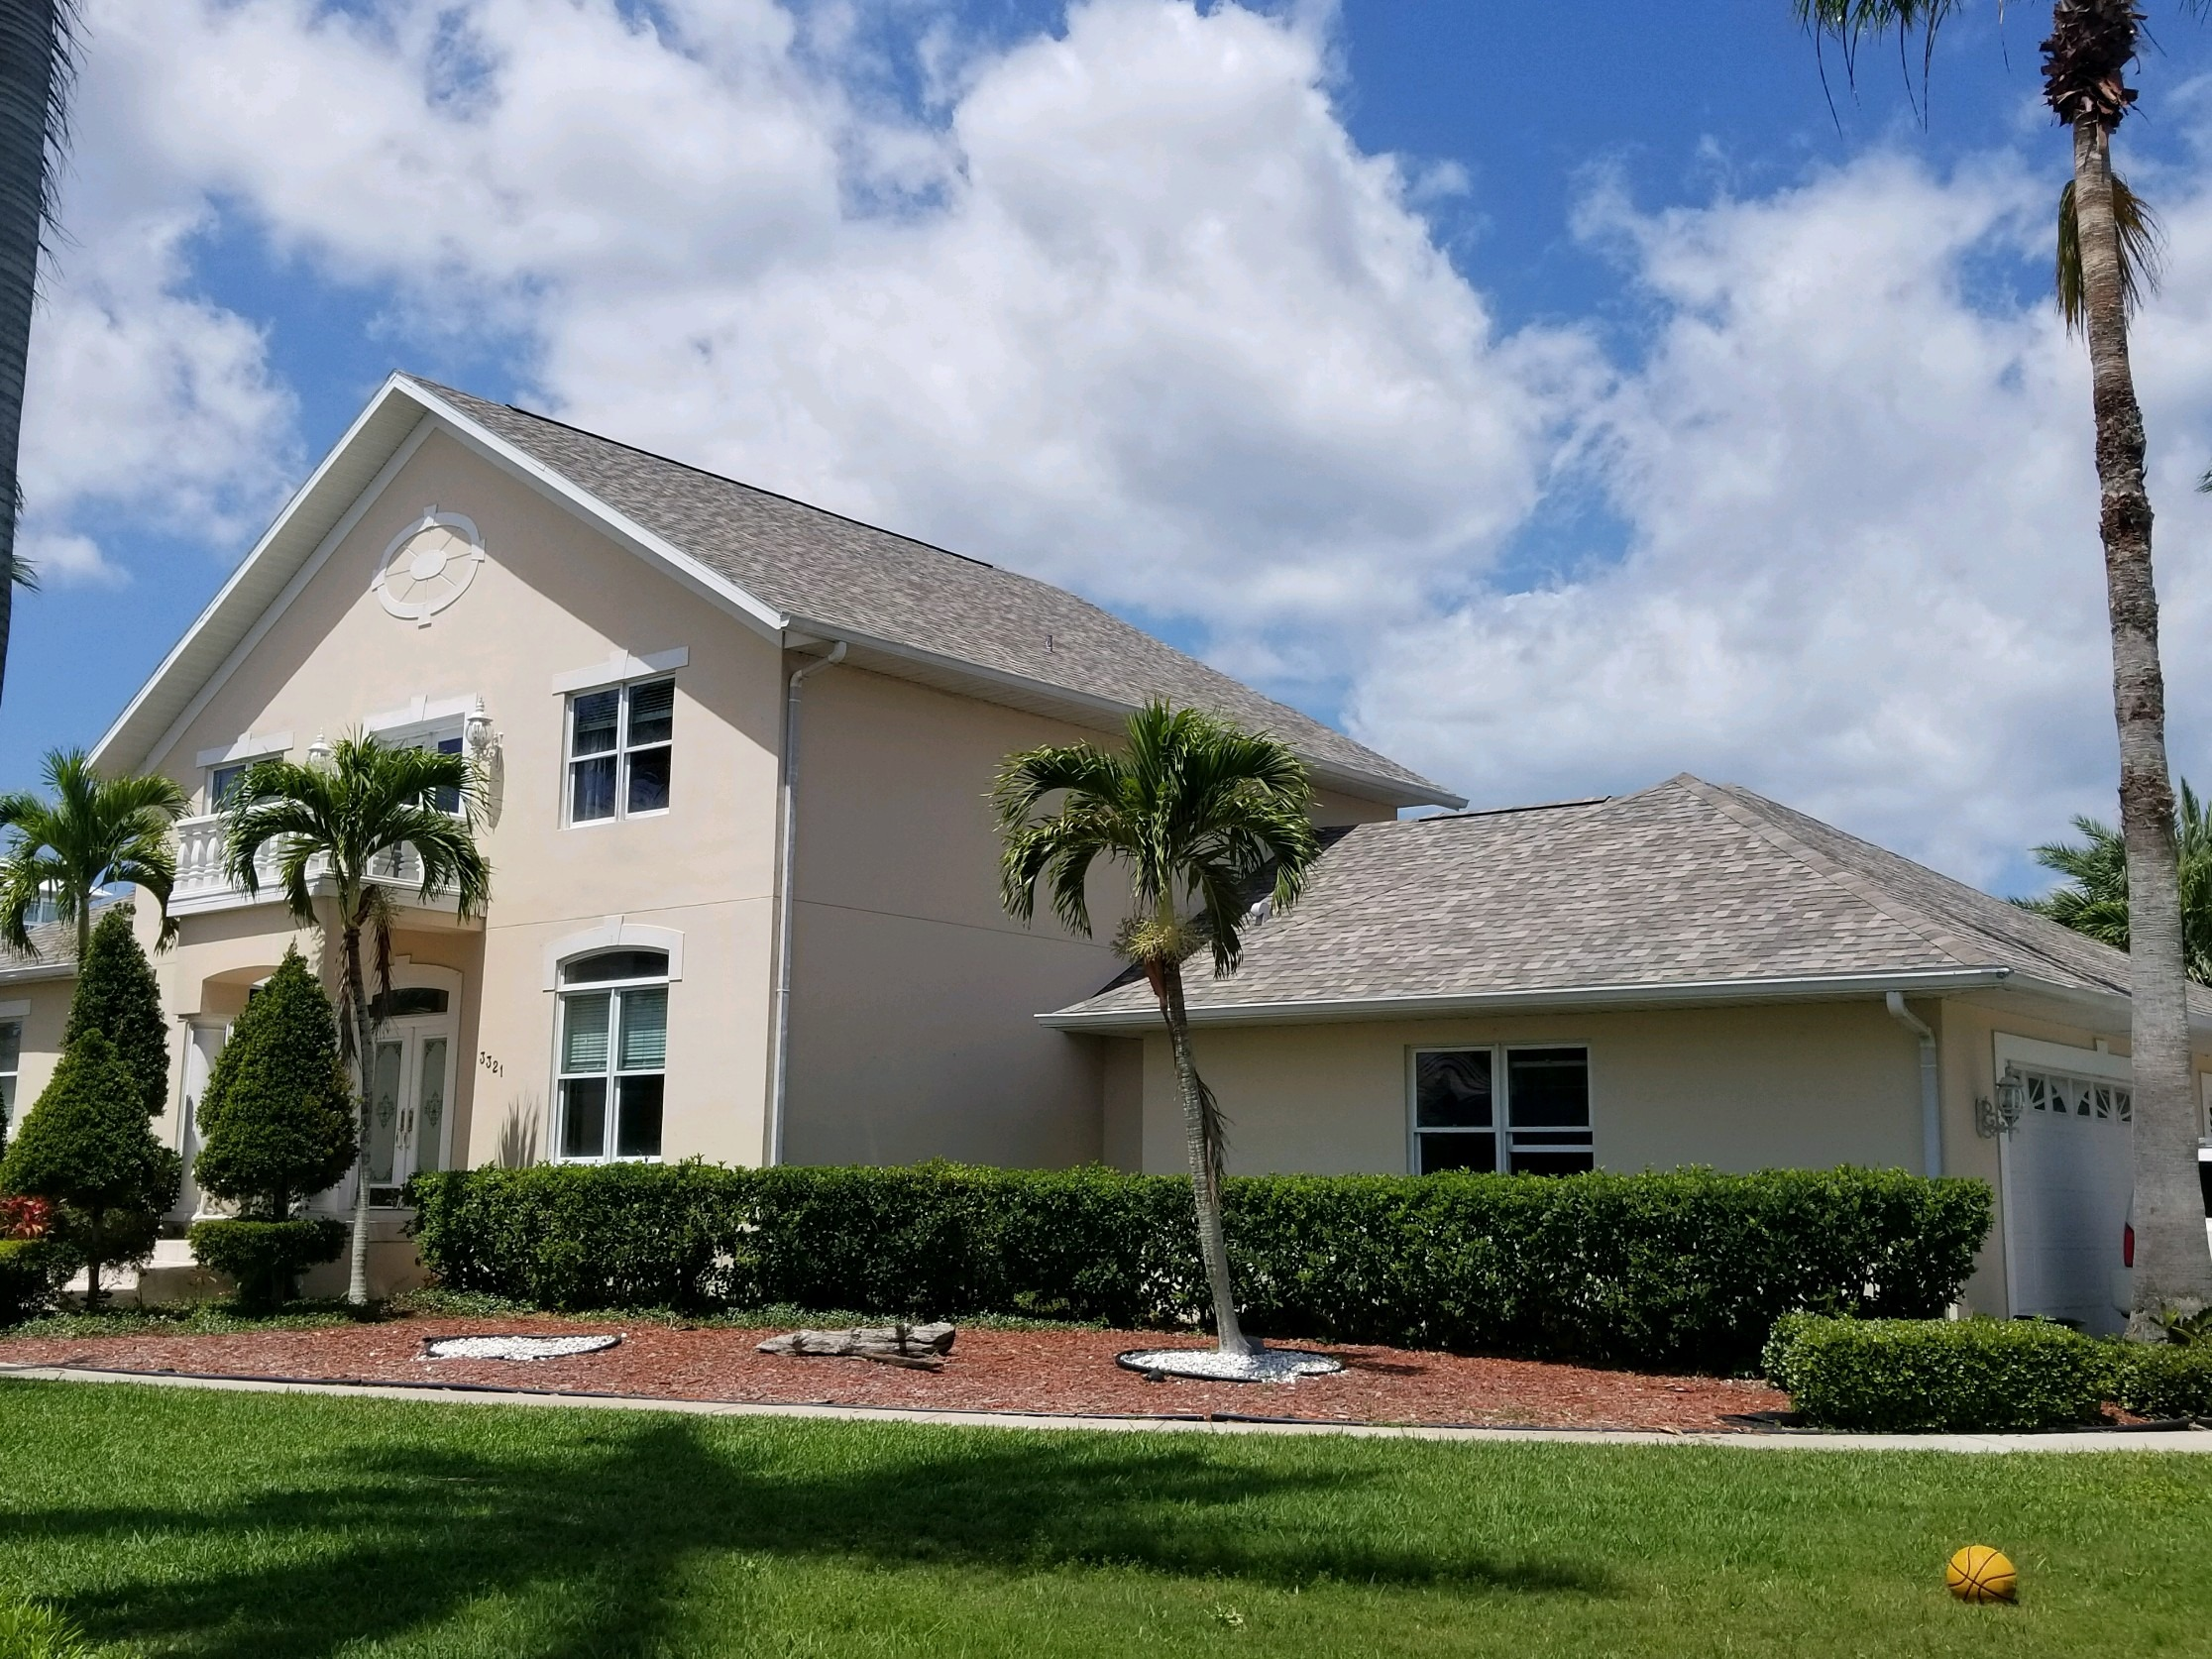 Customer Roof Repair - Get Coastal Exteriors